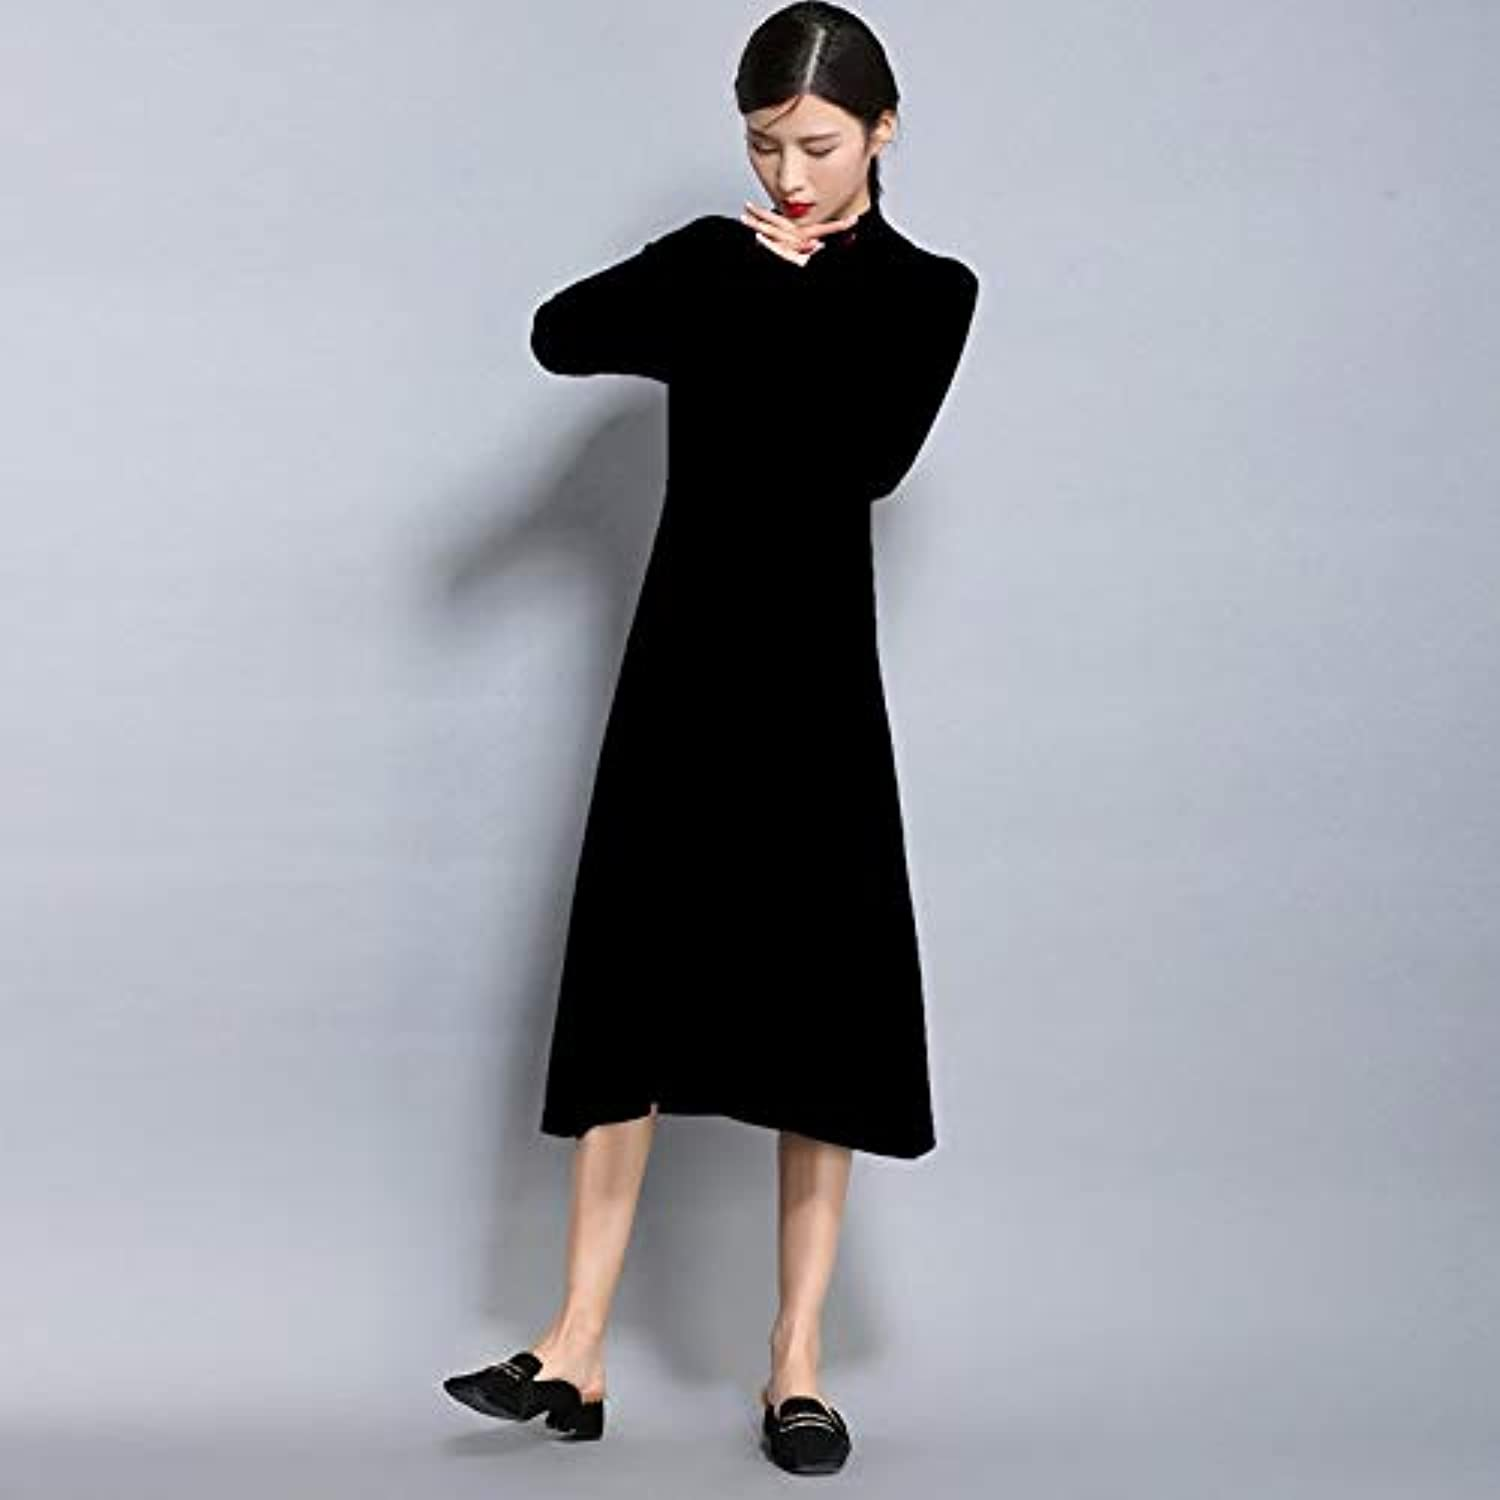 Cxlyq Dresses Winter Women Sweater Dress Women Casual Dresses ONeck Loose Long Dresses